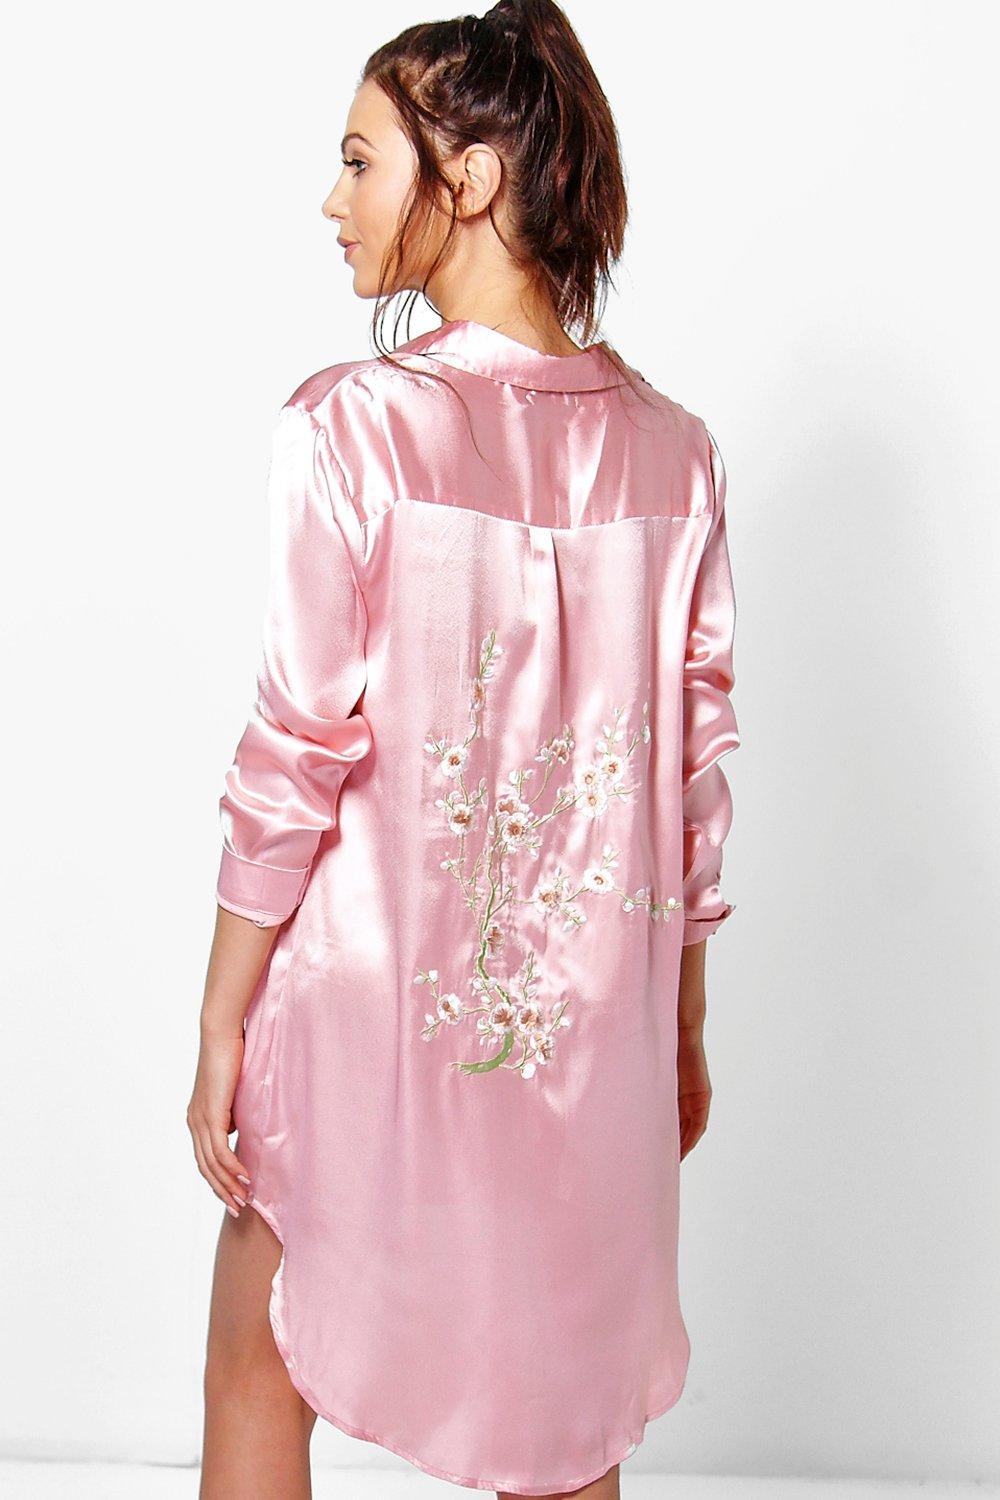 Kayla Satin Embroidered Cherry Blossom Night Dress